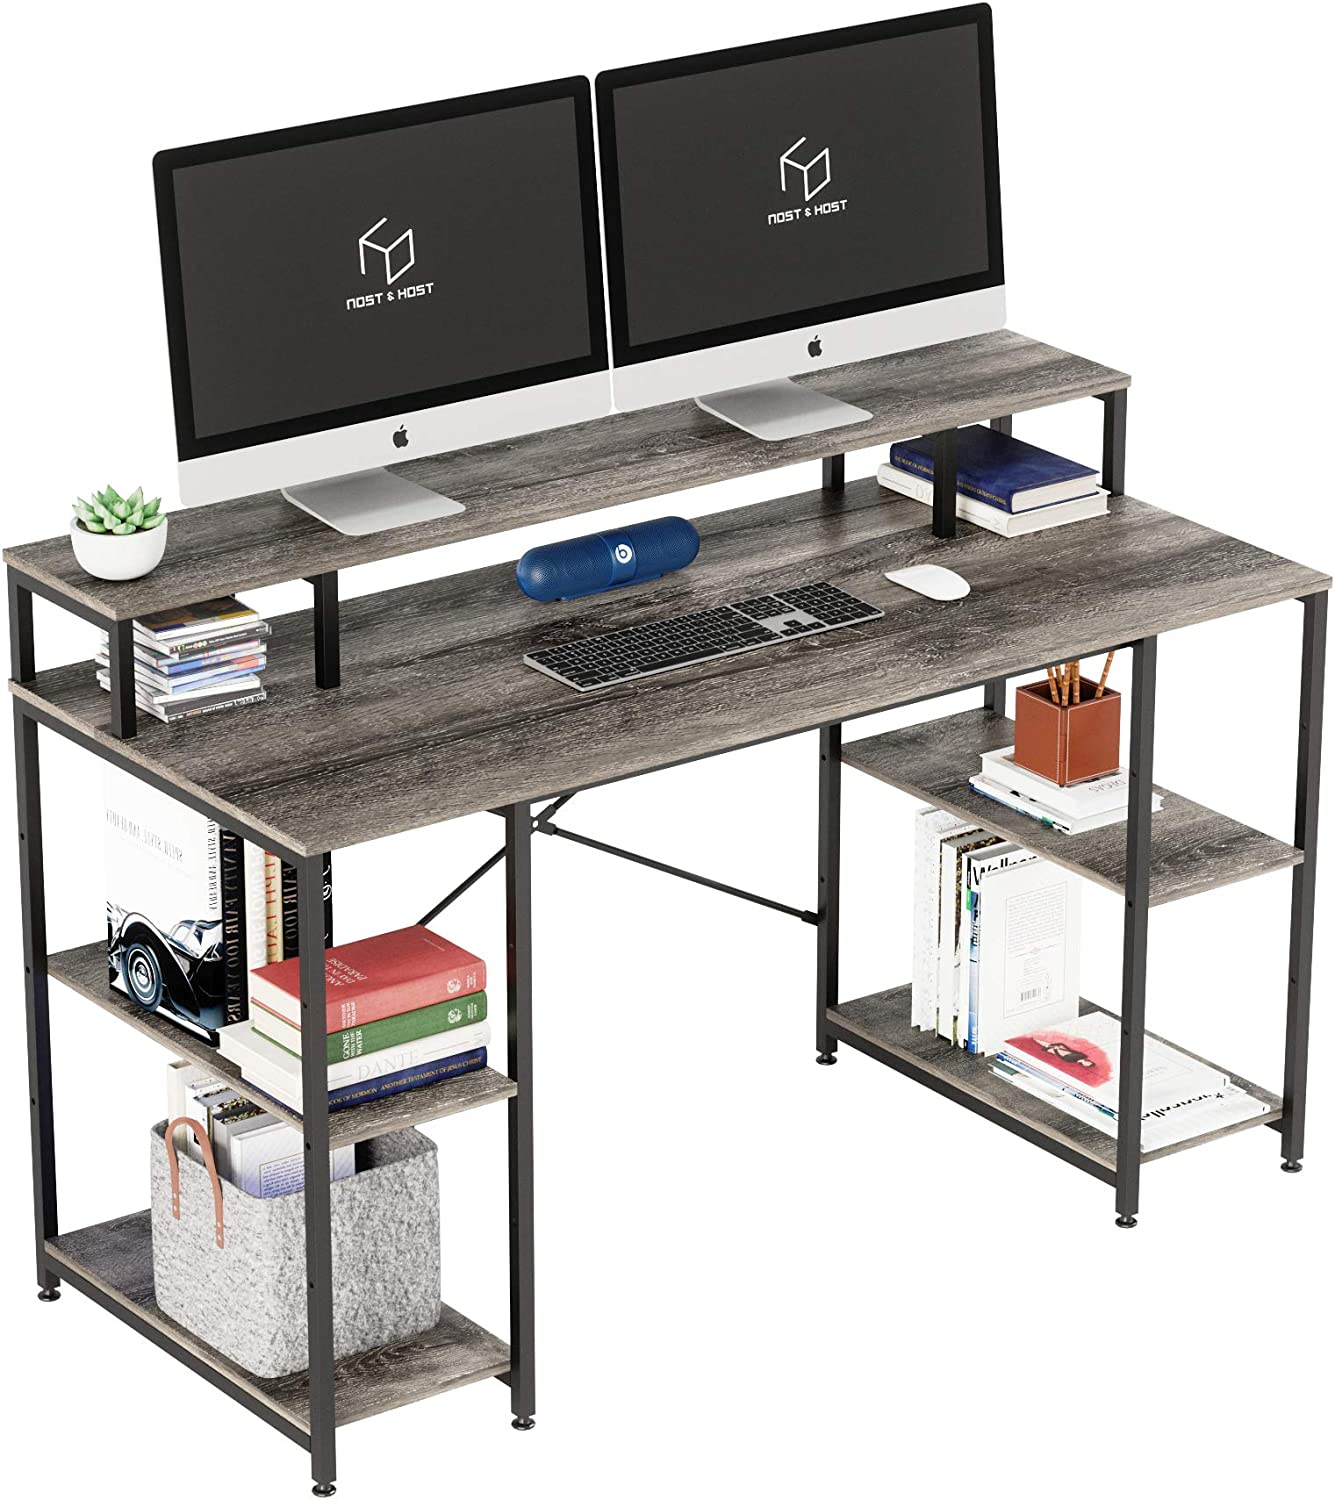 Nost & Host Computer Desk with Monitor Shelf & Adjustable Storage Shelves, 55 Inches Dual Monitor Desk with Hutch, Ergonomic Gaming Table, Home Office Sturdy Table, Easy Assemble, Gray